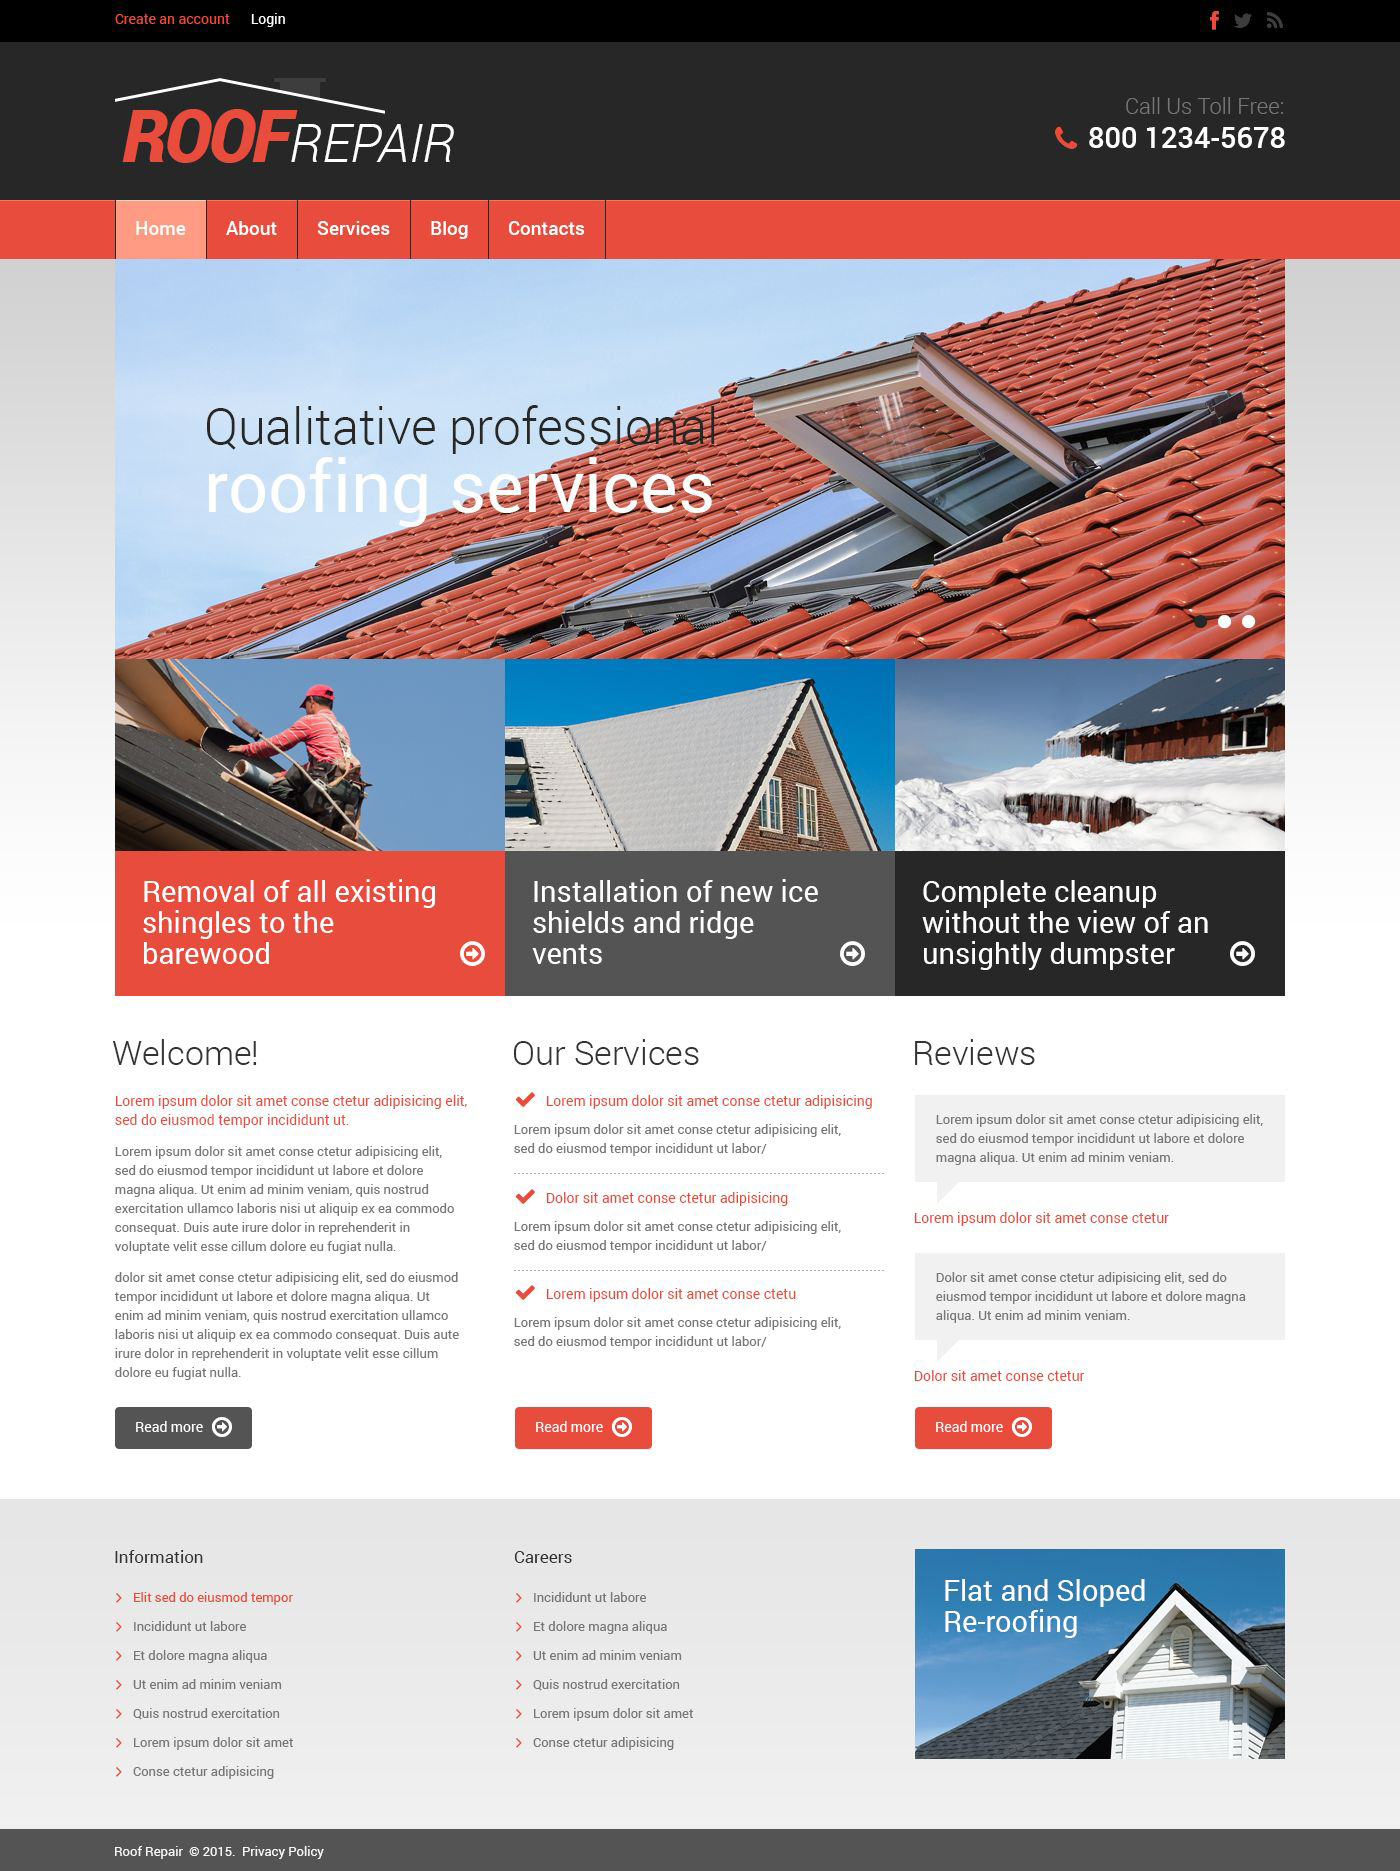 The Roof Repair Drupal Design 53351, one of the best Drupal templates of its kind (most popular, maintenance services), also known as roof repair Drupal template, roofing company Drupal template, house Drupal template, top reliable Drupal template, housetop tiling Drupal template, cover Drupal template, decking Drupal template, re-cover Drupal template, roofage Drupal template, tile and related with roof repair, roofing company, house, top reliable, housetop tiling, cover, decking, re-cover, roofage, tile, etc.